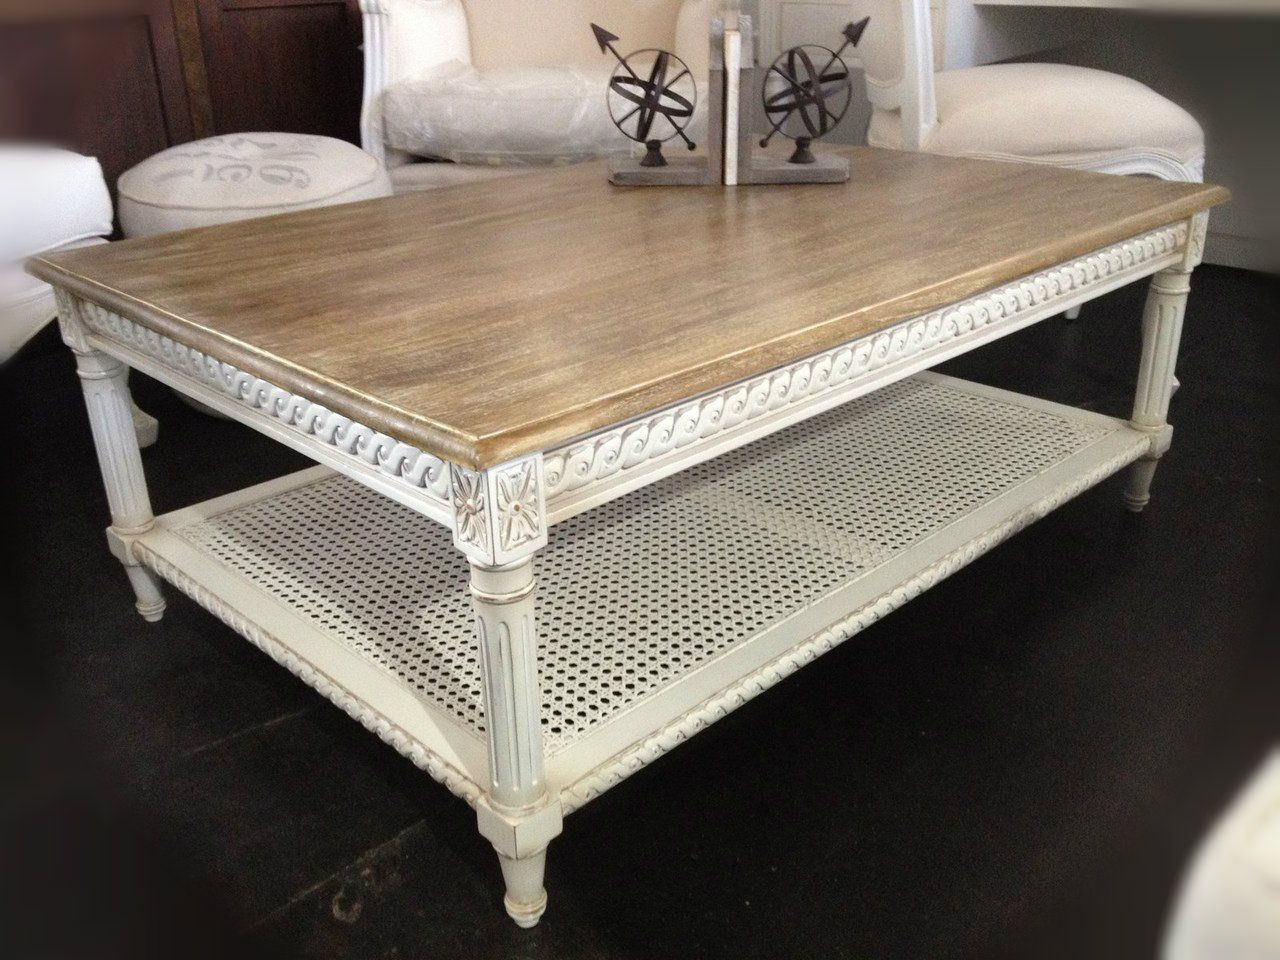 Hamptons Rattan Coffee Table Distressed White with Limewash Top